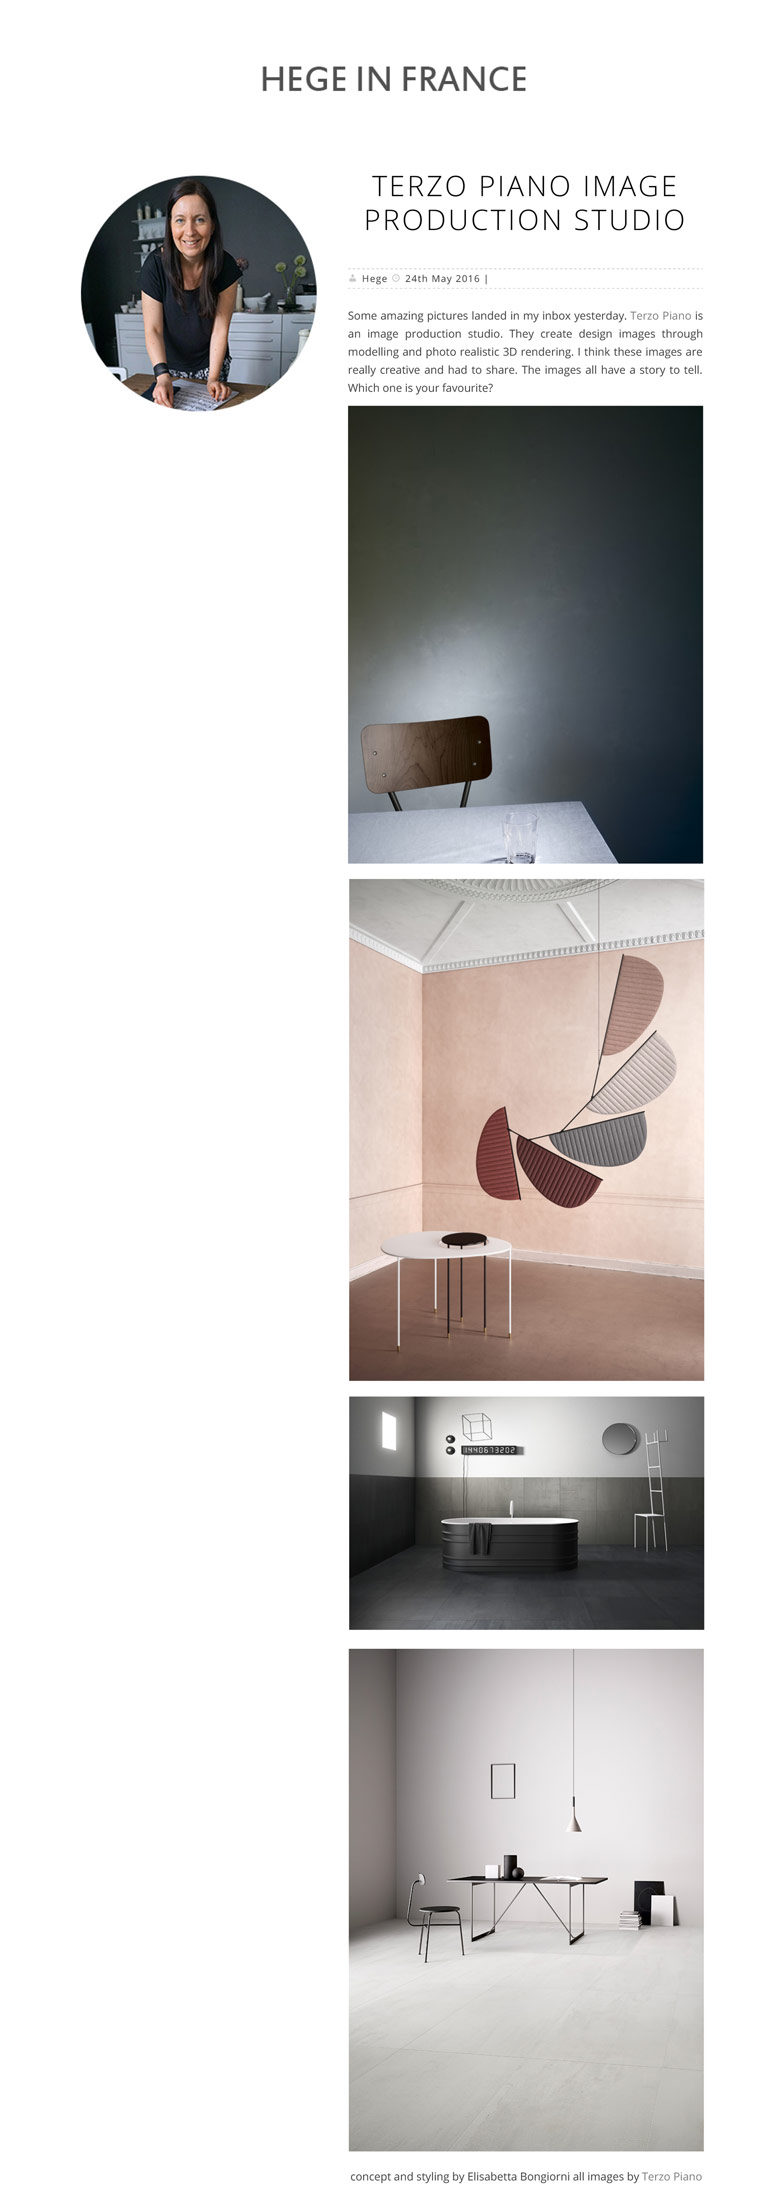 HEGE IN FRANCE about @terzopiano    #INTERIORDETAILS project